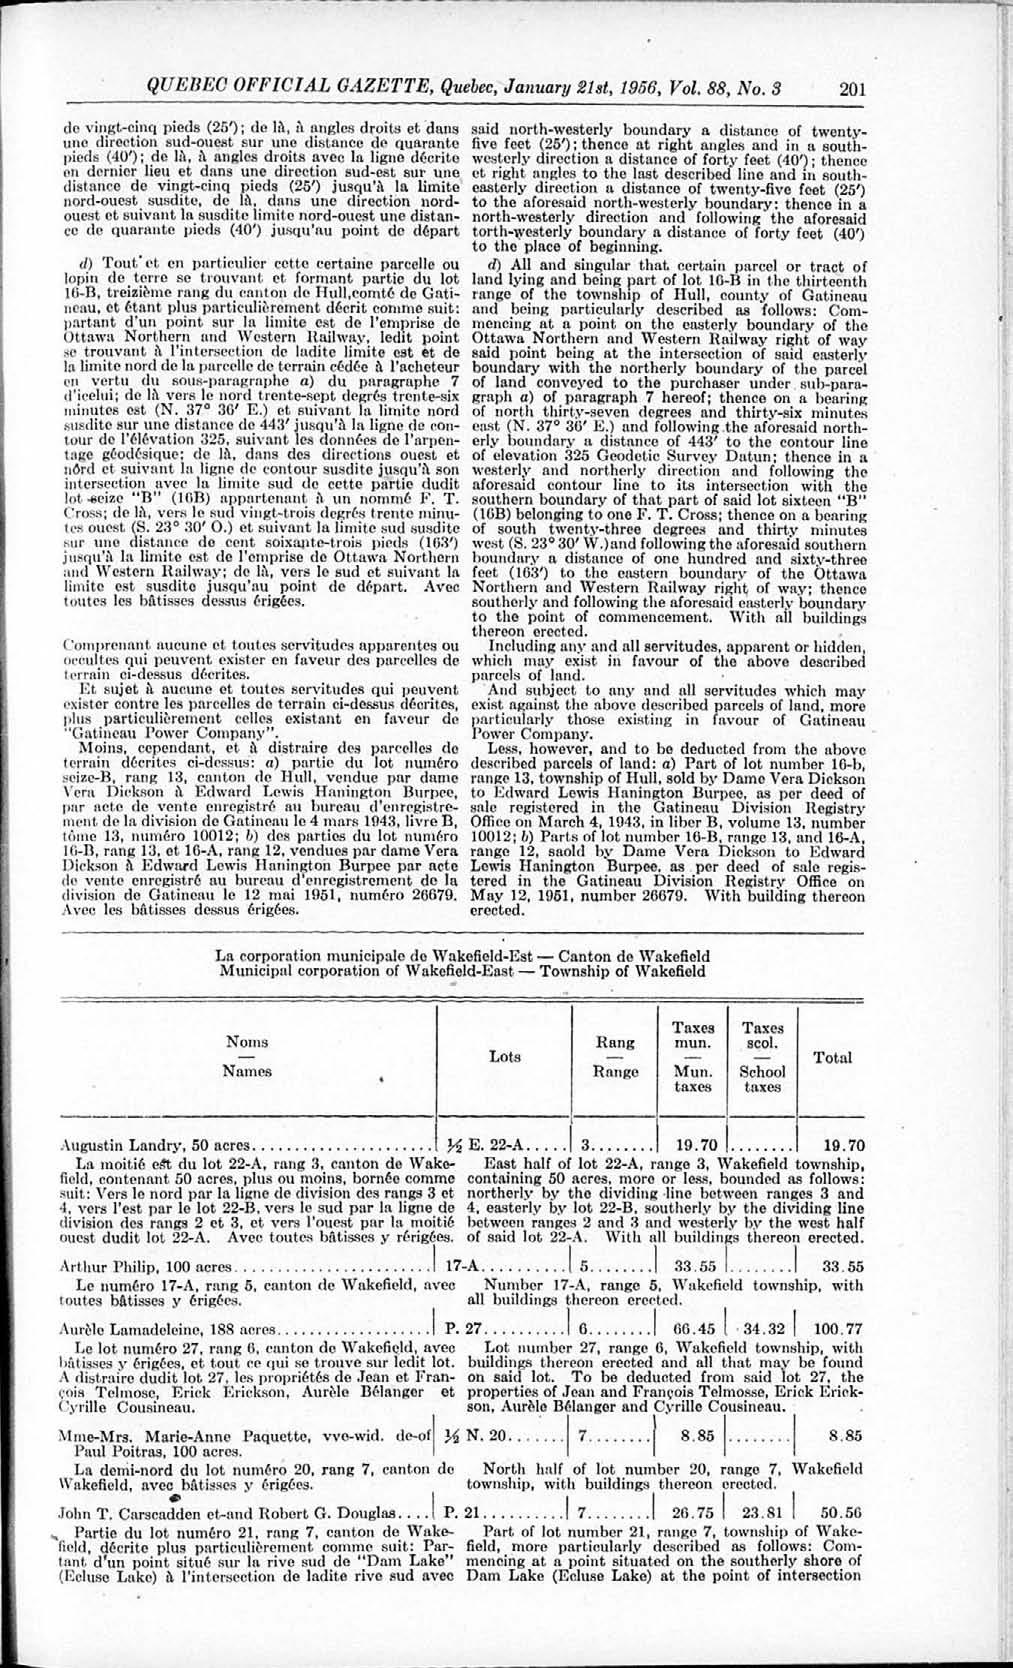 Gazette Officielle De Qubec Quebec Official Pdf Dictionary Of Electronic And Engineering Terms 39b39 January 21st 1956 Vol 88 No